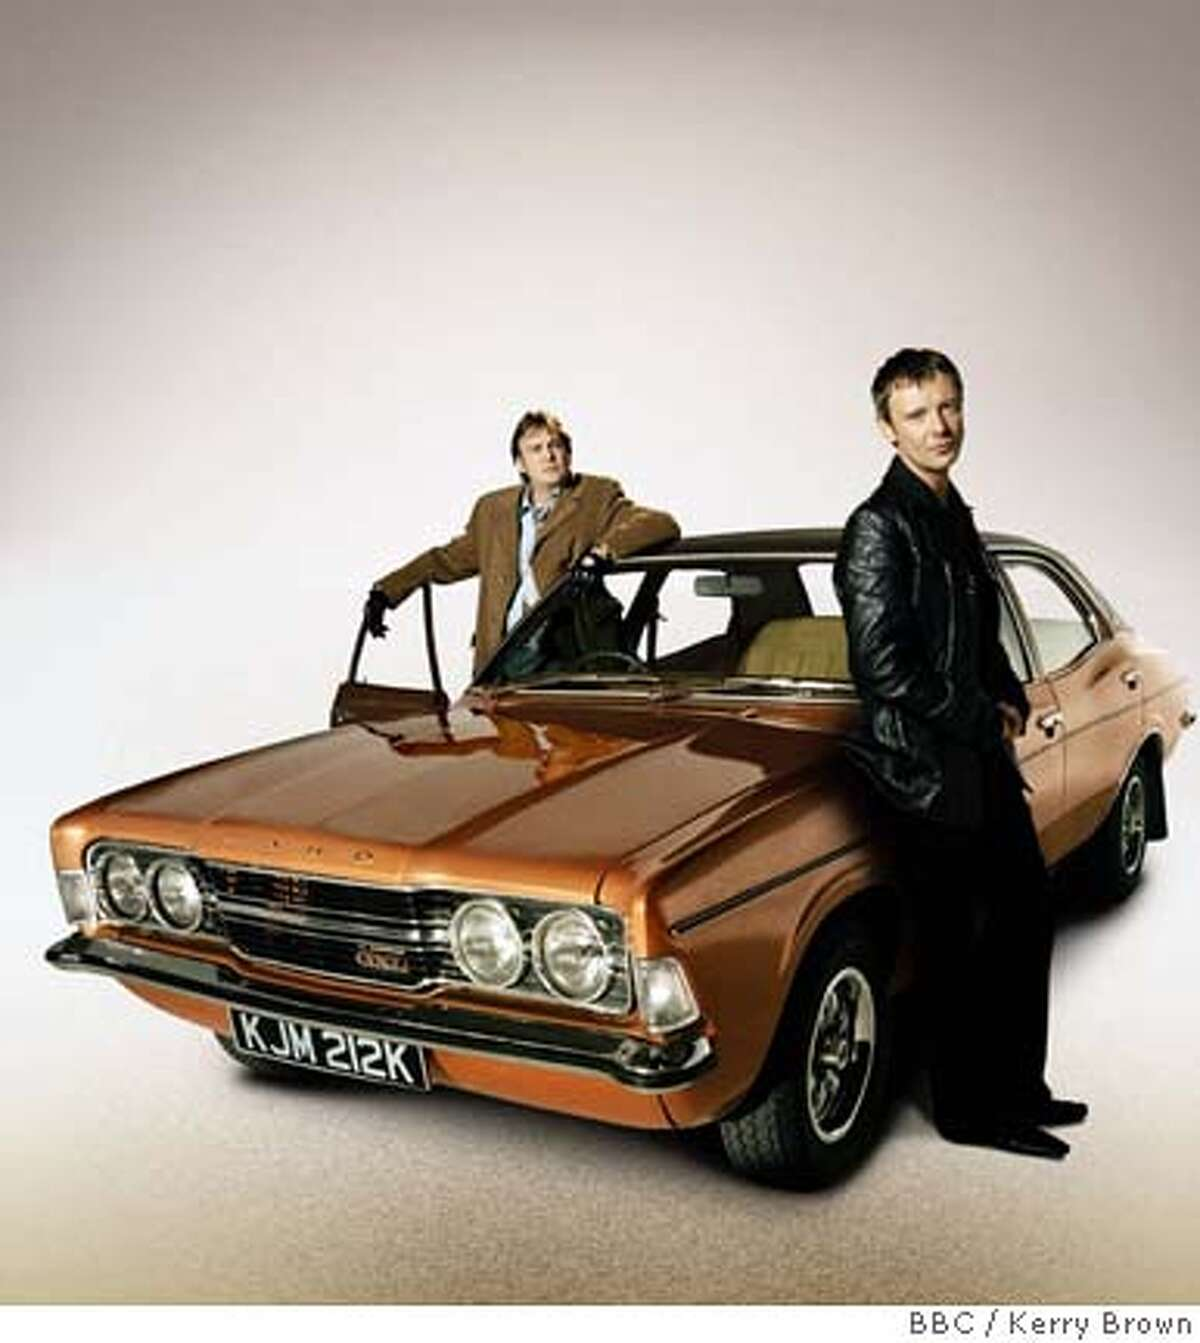 With a series of gripping investigations and a murder inquiry that spans both eras, Life on Mars is a compelling drama and an imaginative exploration of the recent past. Starring John Simm (State of Play, The Lakes) and Philip Glenister (Byron). Ran on: 07-24-2006 John Simm (right) and Philip Glenister play 1970s British detectives in the BBCs clever Life on Mars. Ran on: 03-23-2007 The British series Life on Mars will be remade by ABC.